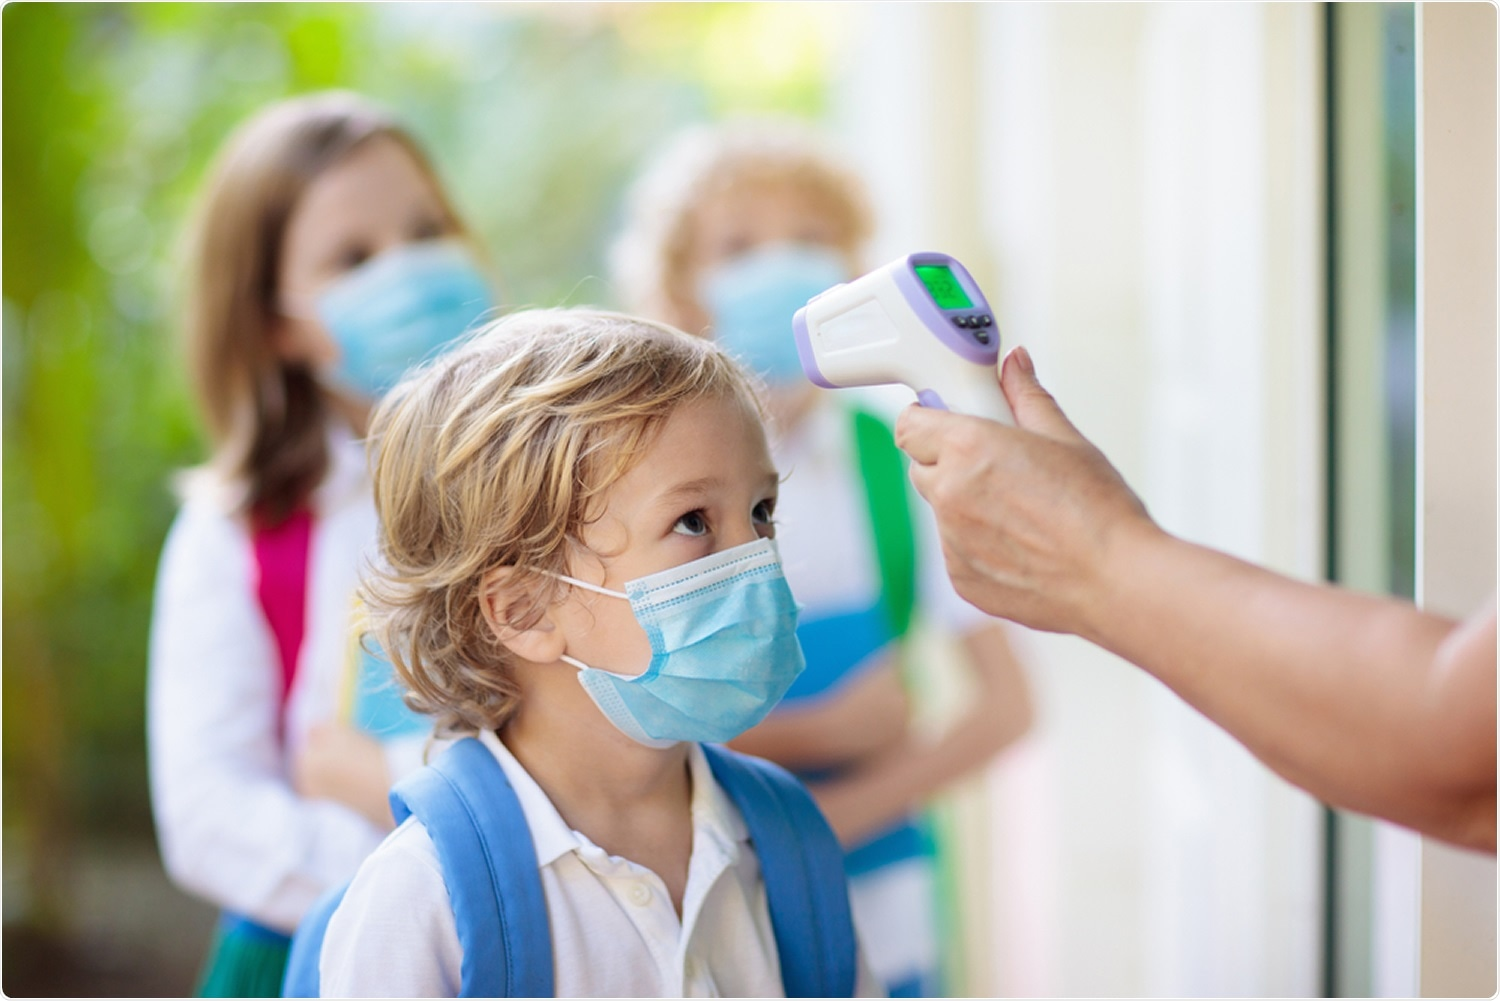 Study: Illness characteristics of COVID-19 in children infected with the SARS-CoV-2 Delta variant. Image Credit: FamVeld / Shutterstock